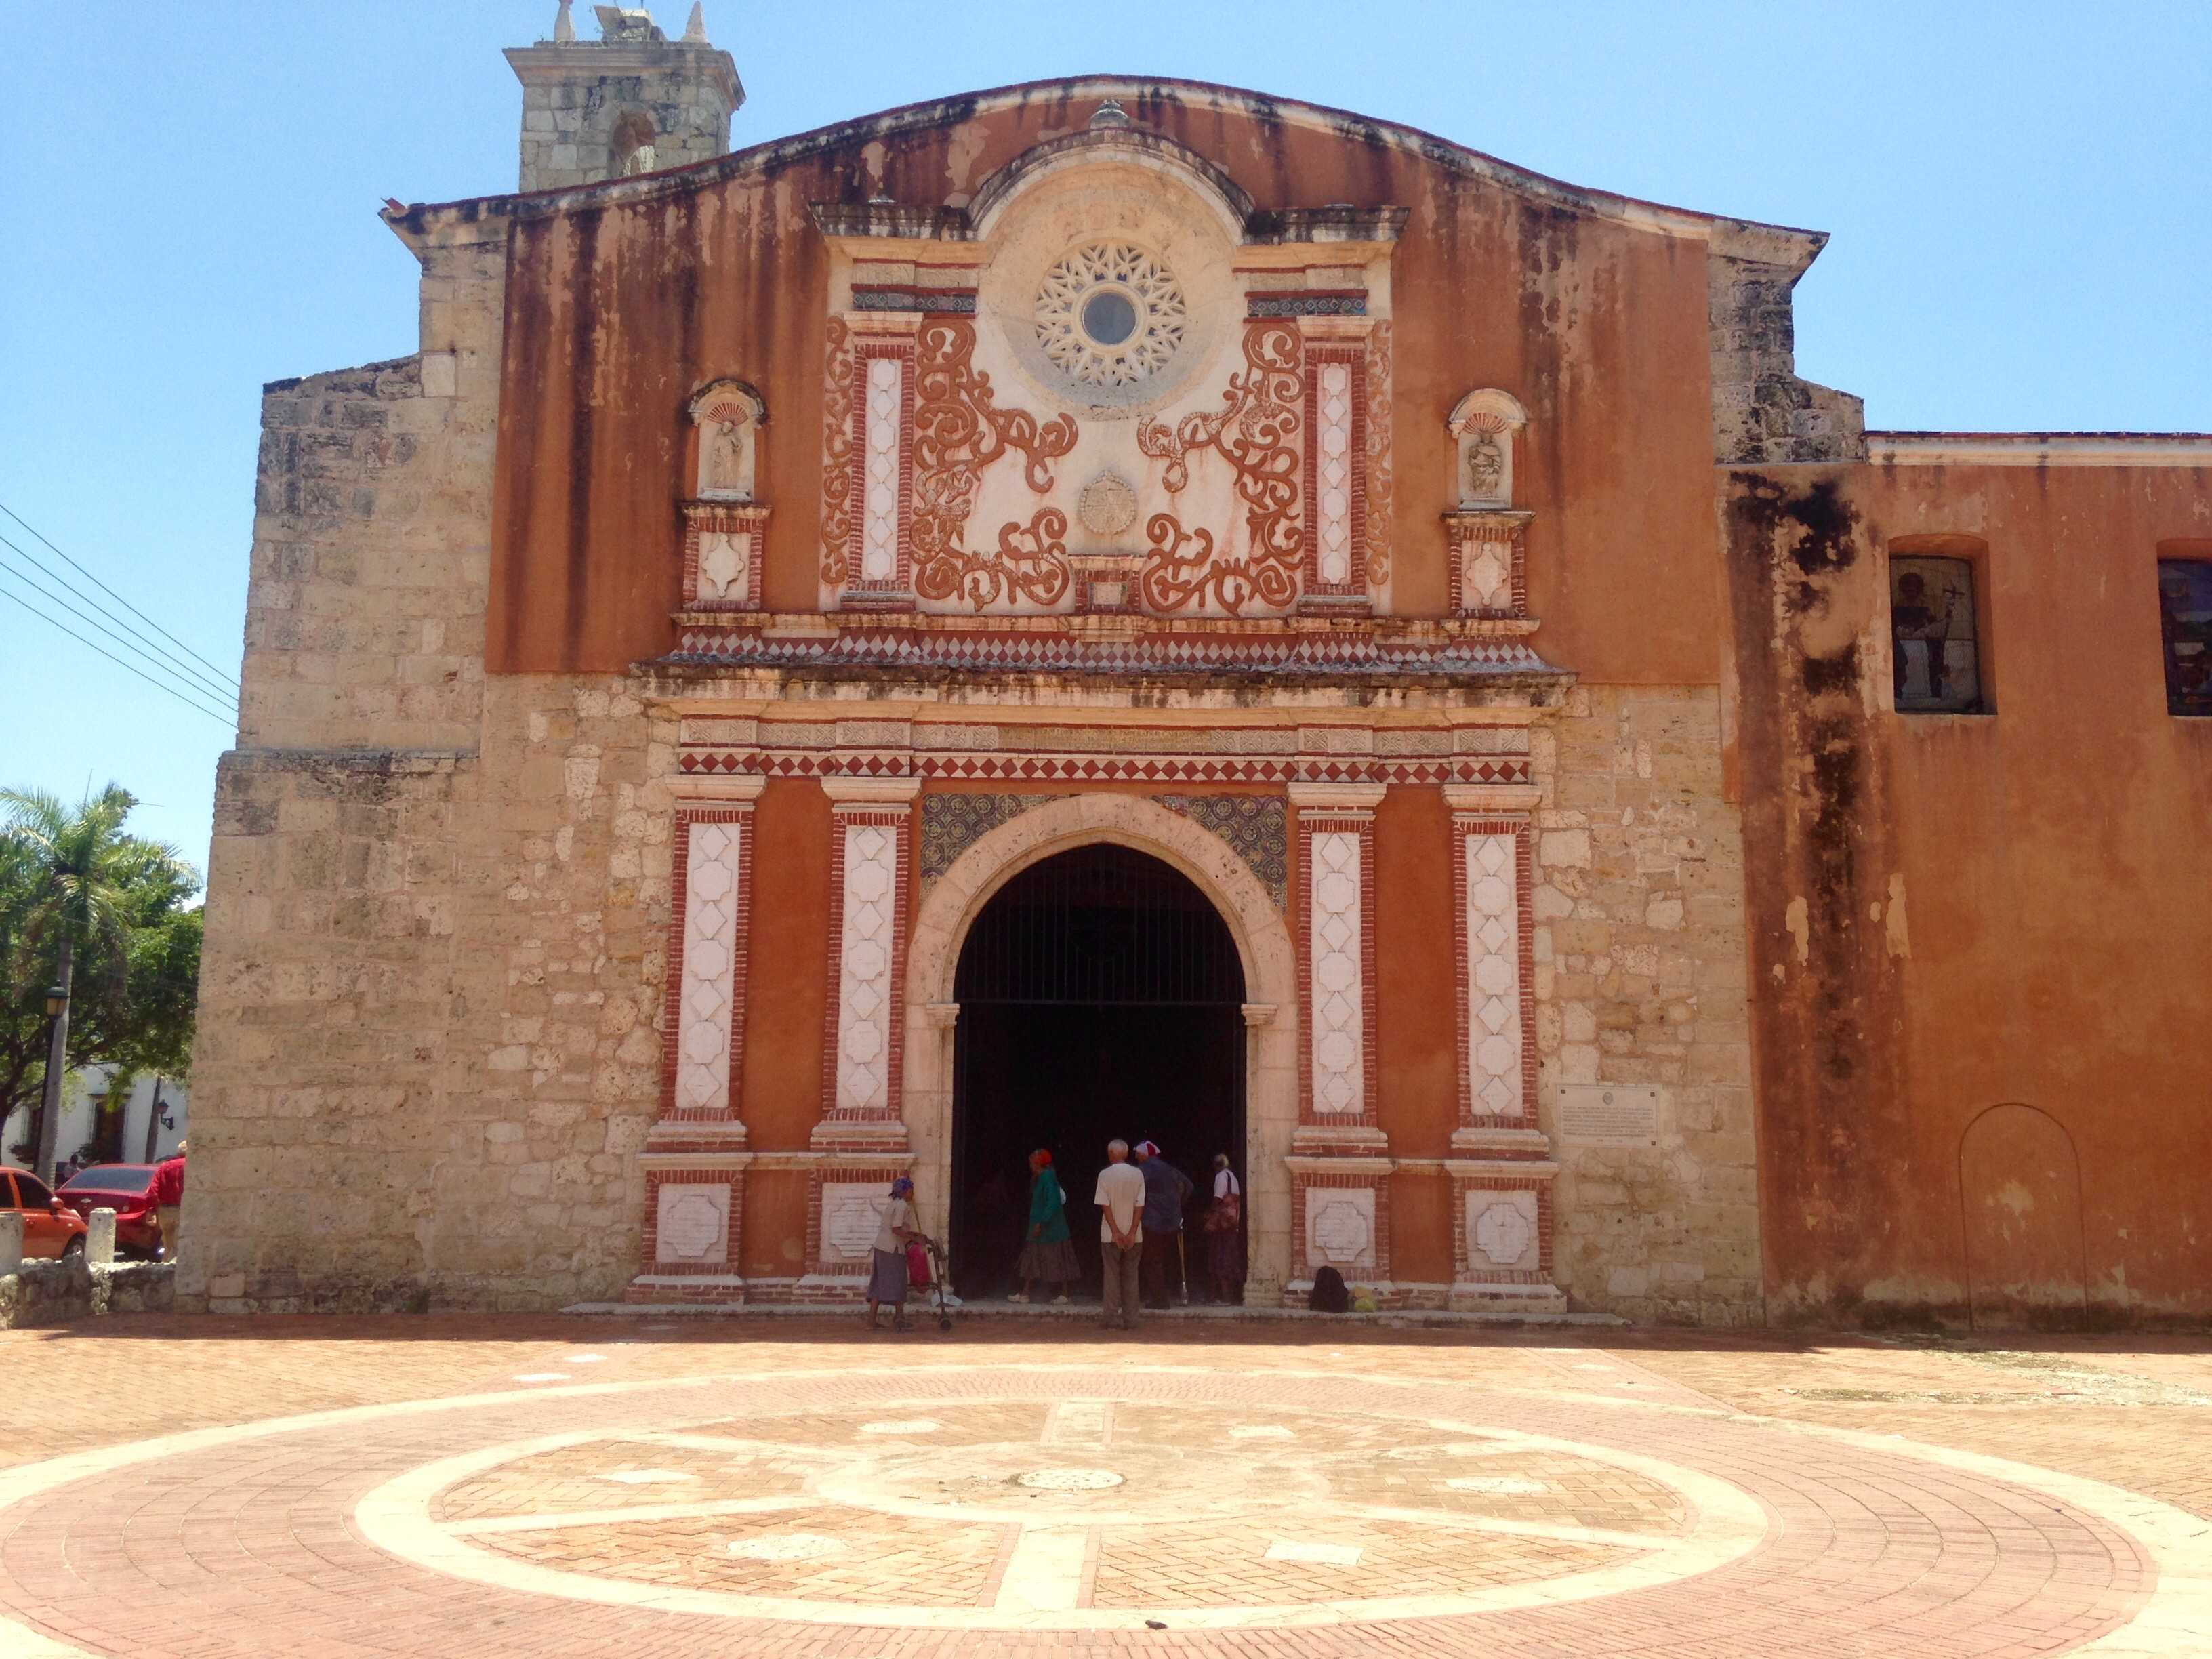 Convento de los Dominicos in Santo Domingo